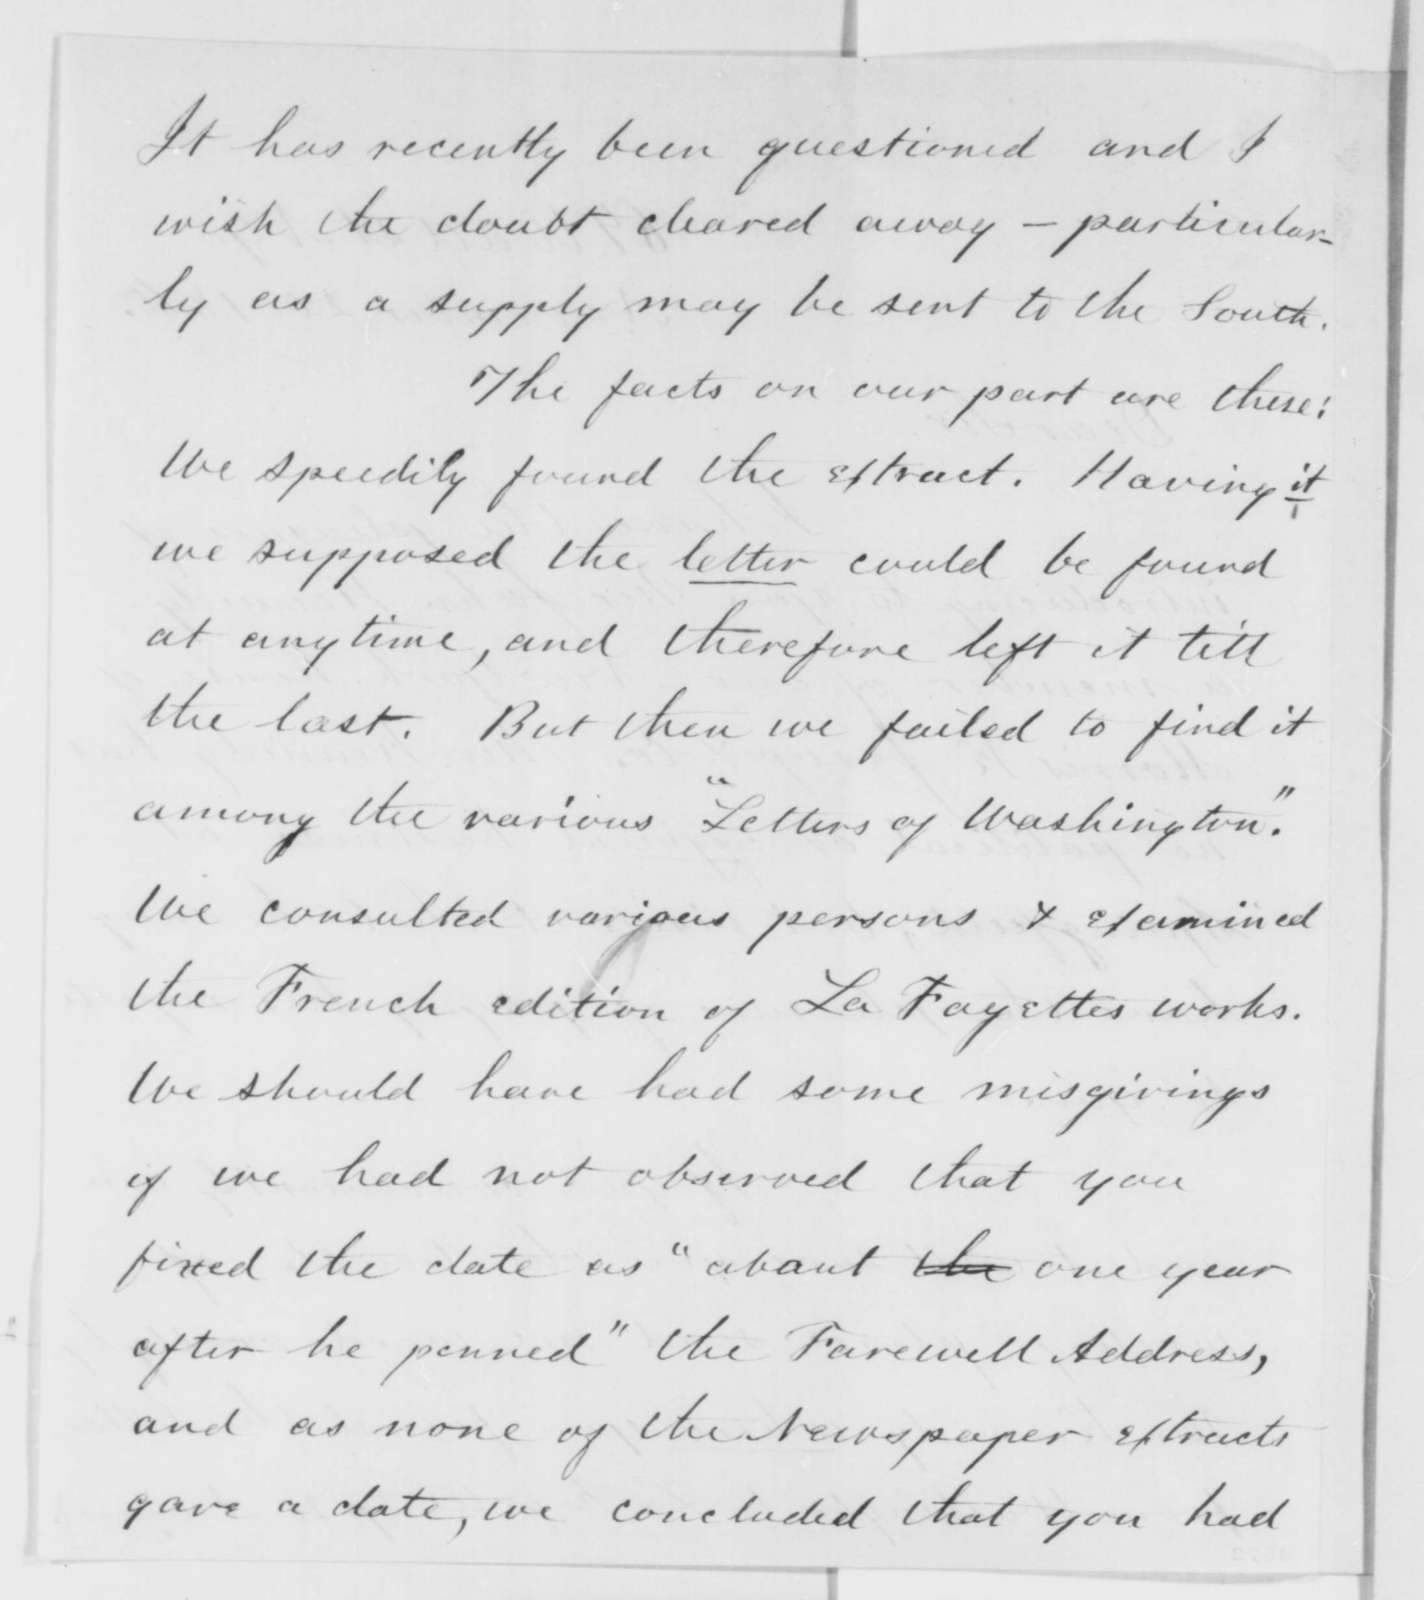 Charles C. Nott to Abraham Lincoln, Tuesday, November 20, 1860  (Introduction and asks question about one of Lincoln's references in a speech)